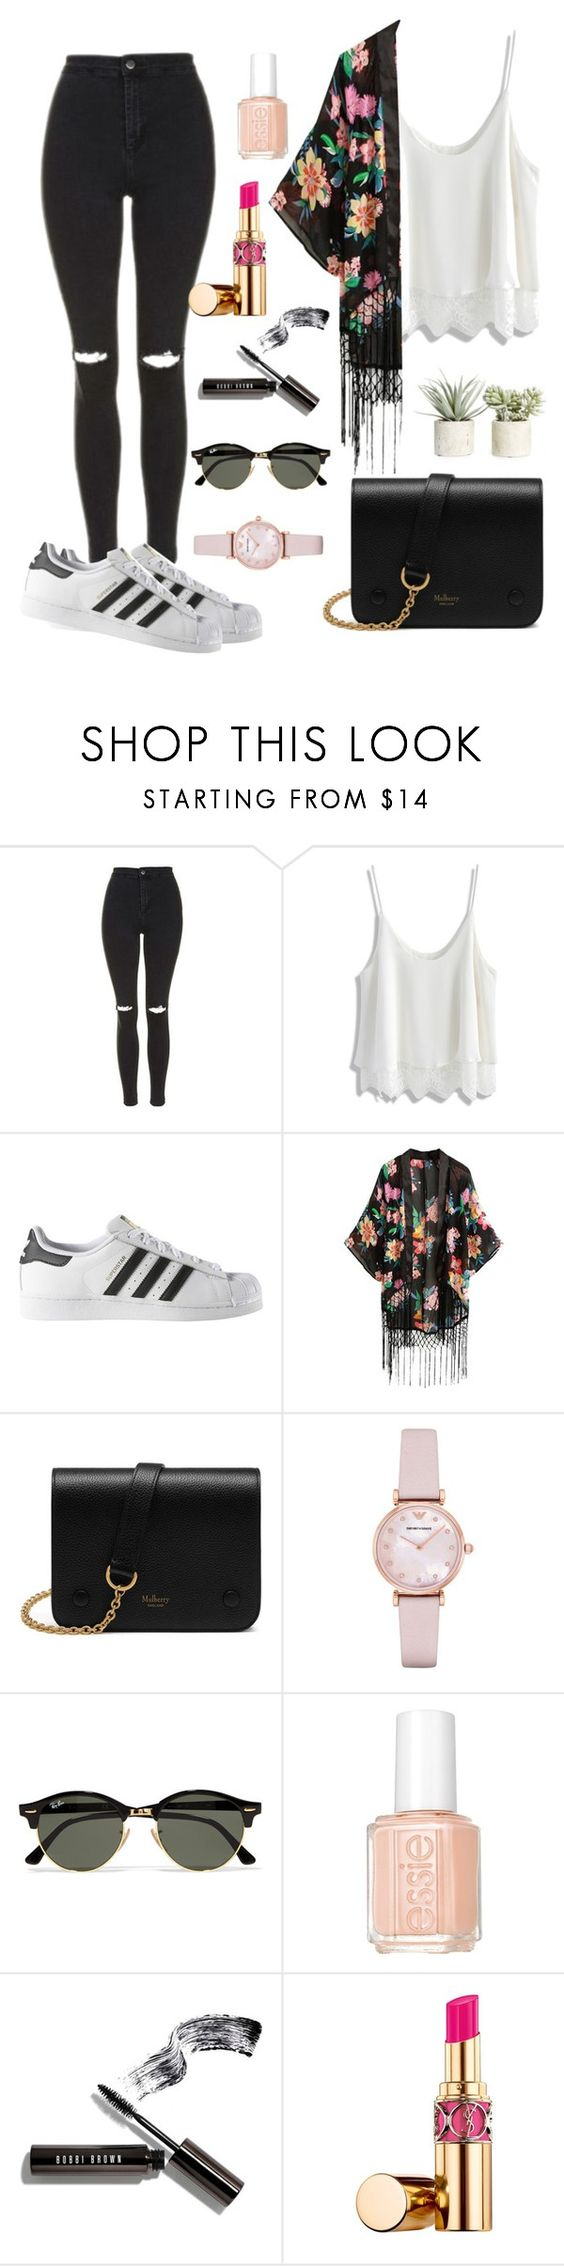 """Esittely Miljalle"" by neacamilla ❤ liked on Polyvore featuring Topshop, Chicwish, adidas, Mulberry, Emporio Armani, Ray-Ban, Essie, Bobbi Brown Cosmetics, Yves Saint Laurent and Allstate Floral"